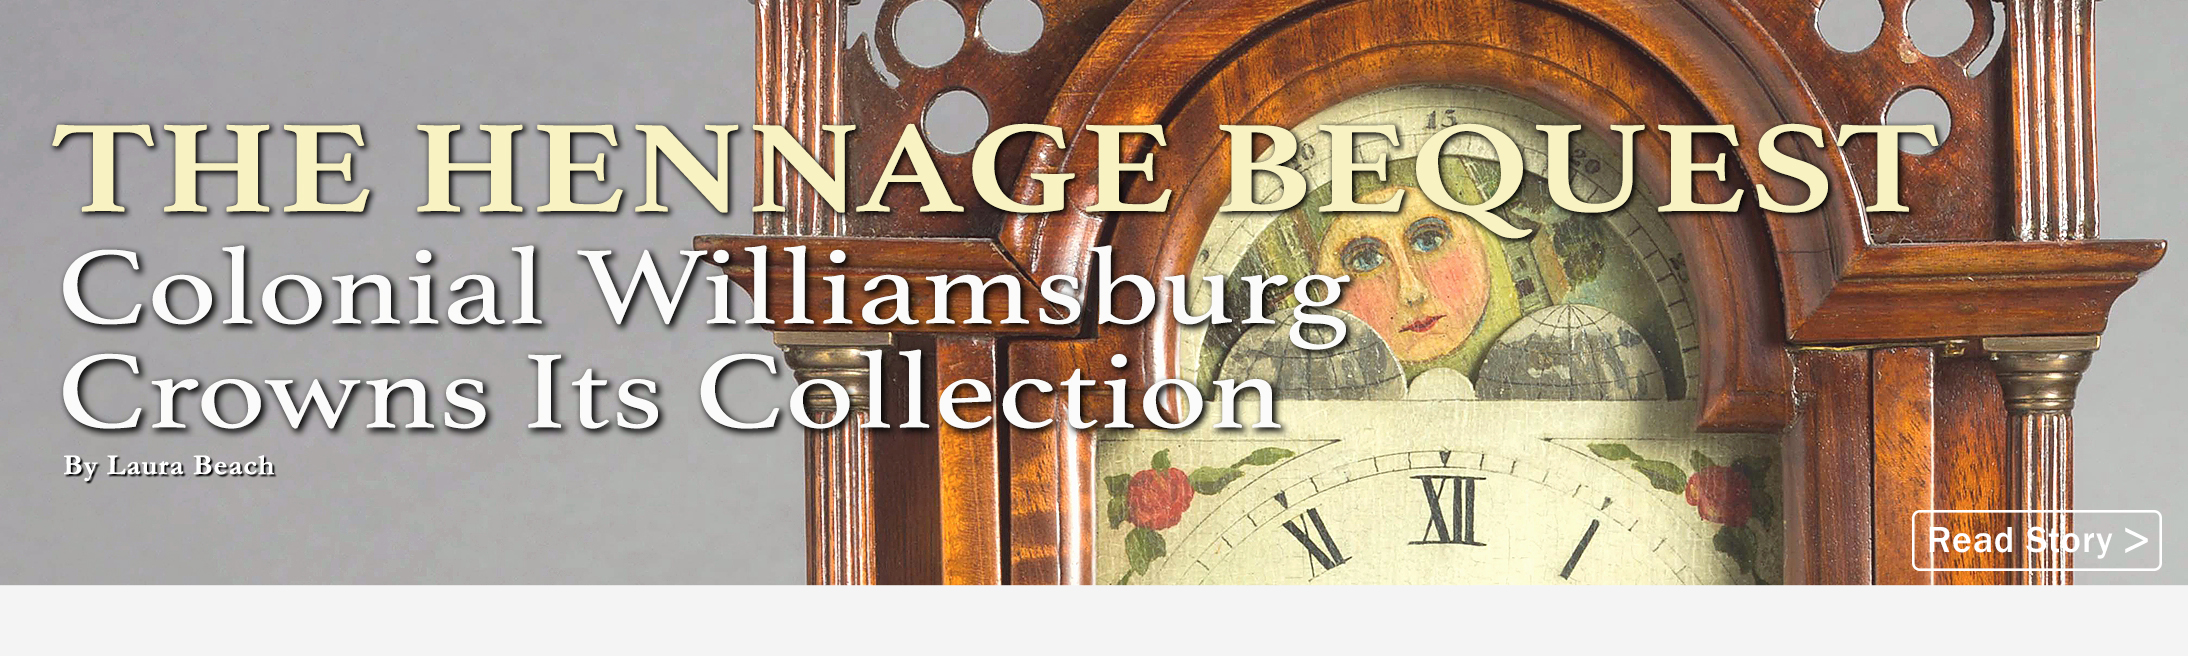 The Hennage Bequest: Colonial Williamsburg Crowns Its Collection